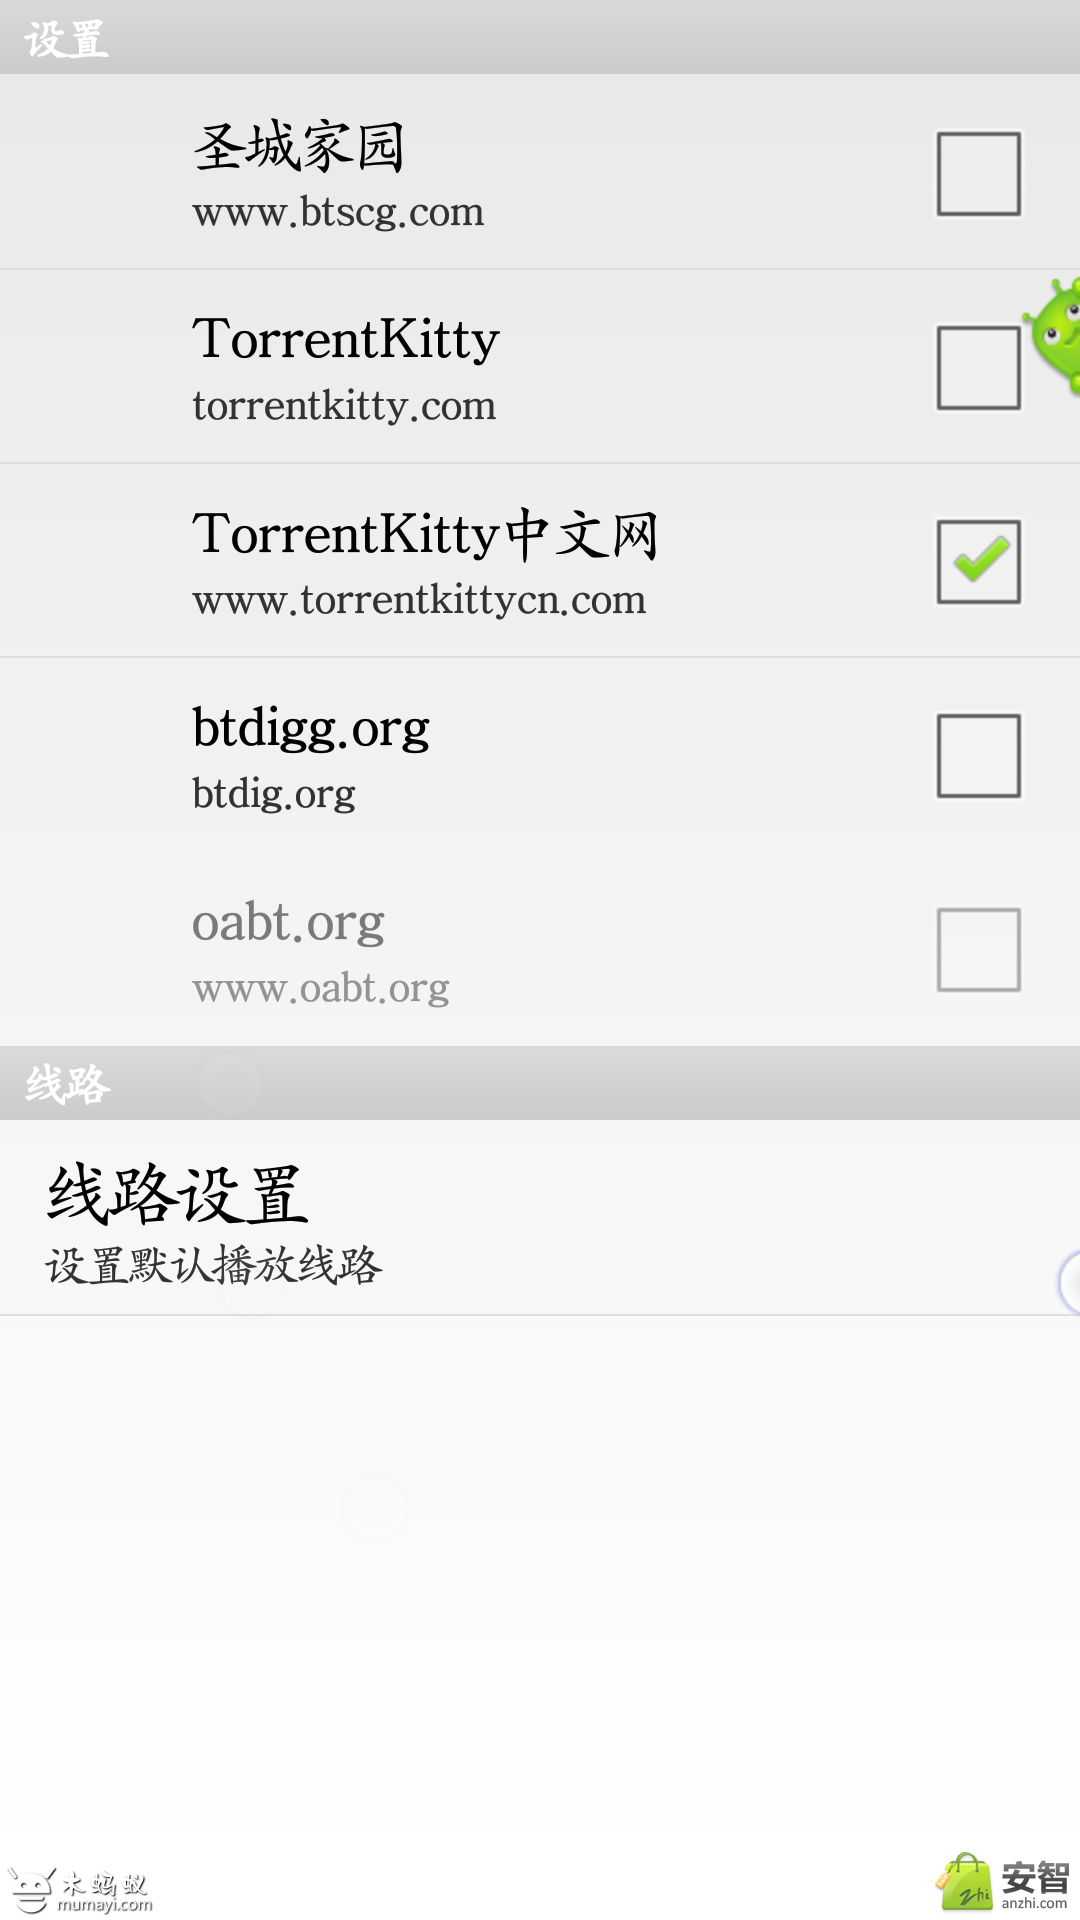 Screenshot_2013-11-26-09-34-26.png